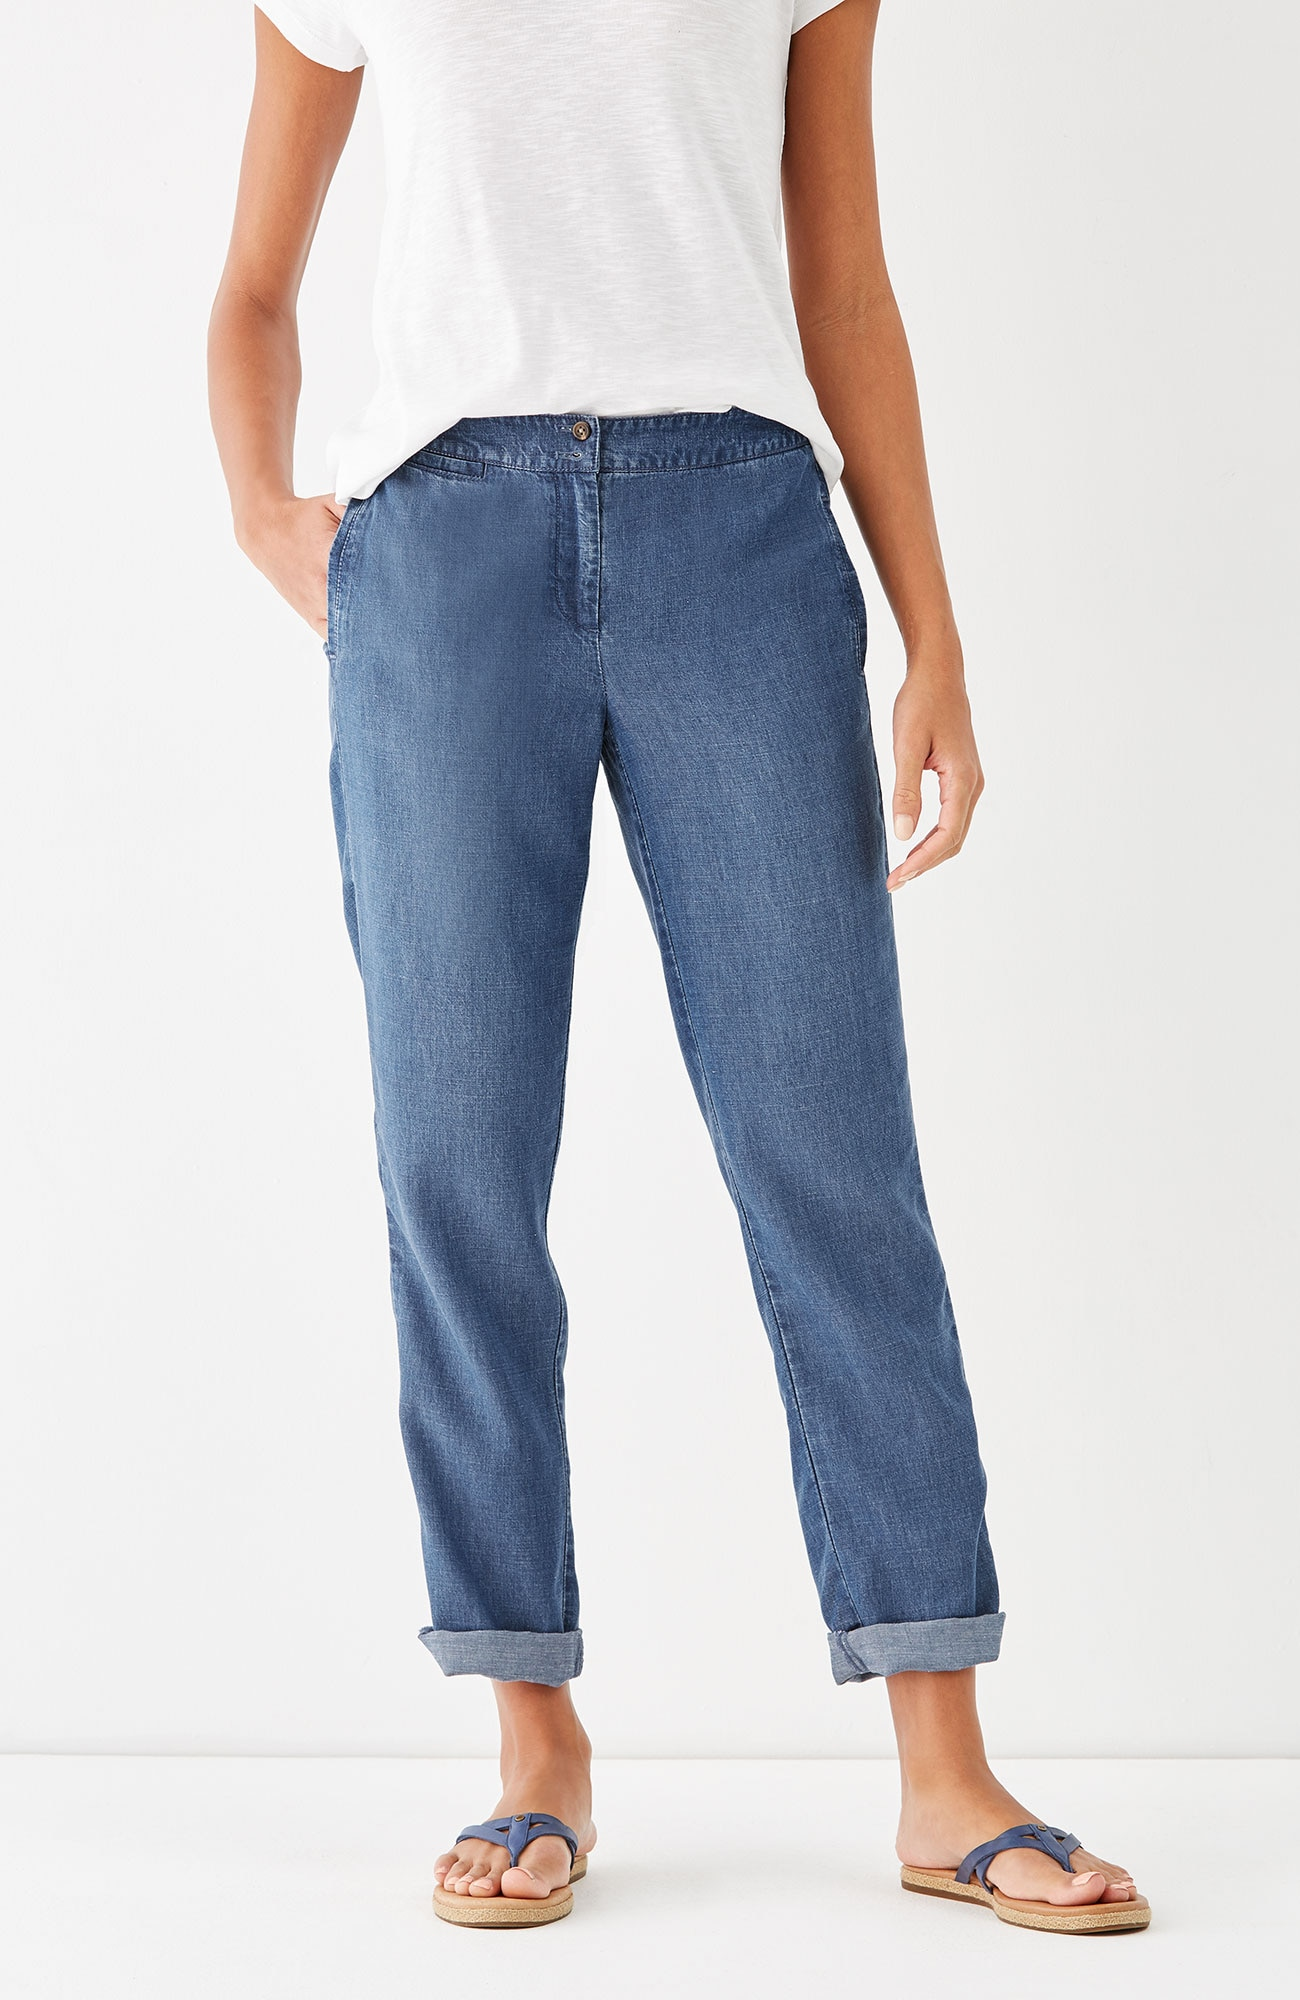 Tencel®-Soft indigo forward-seam pants